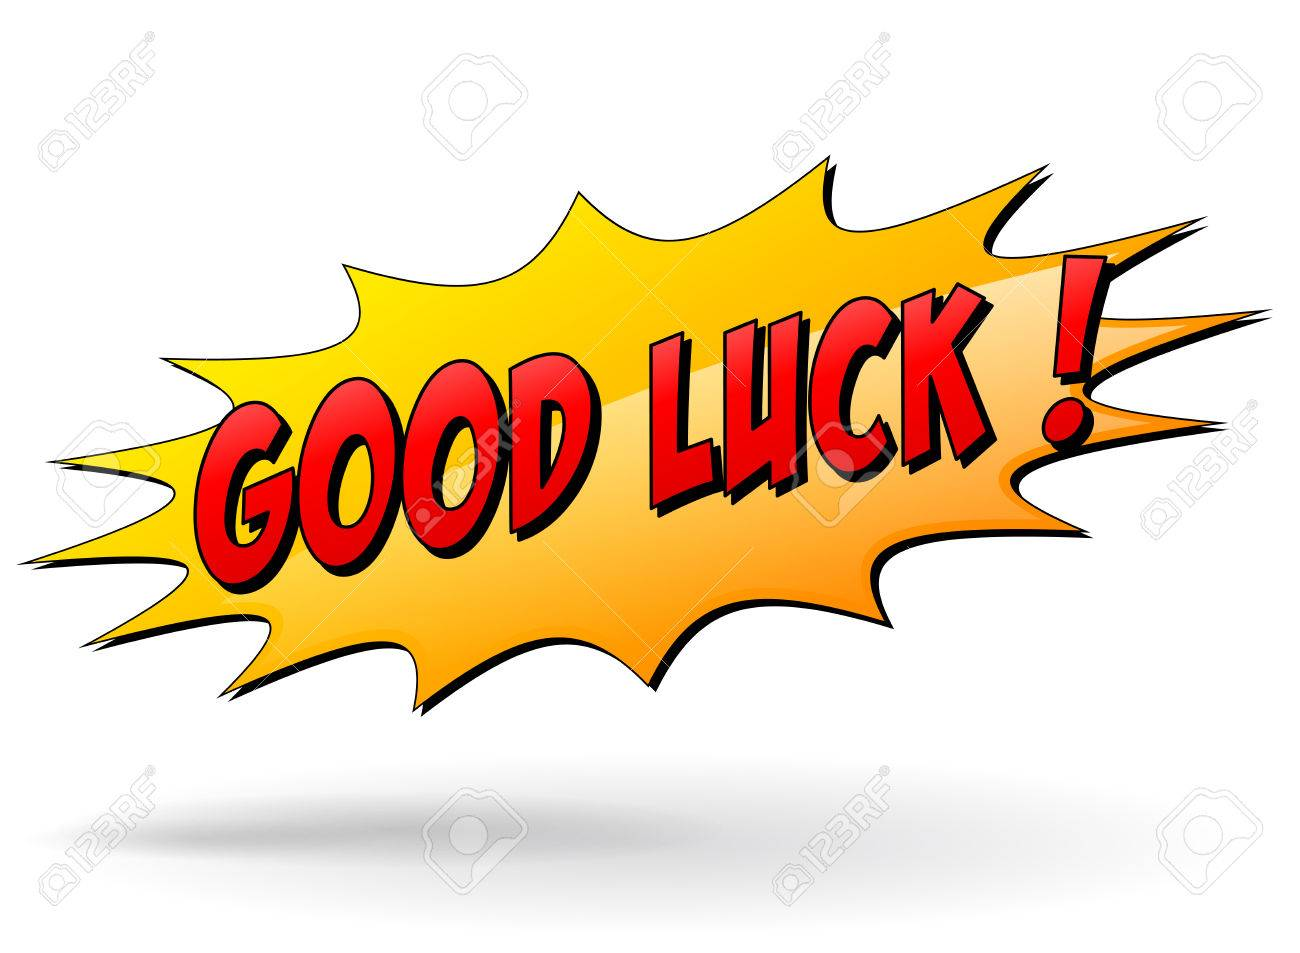 Good Luck to the BHS Track Team Members at Regionals